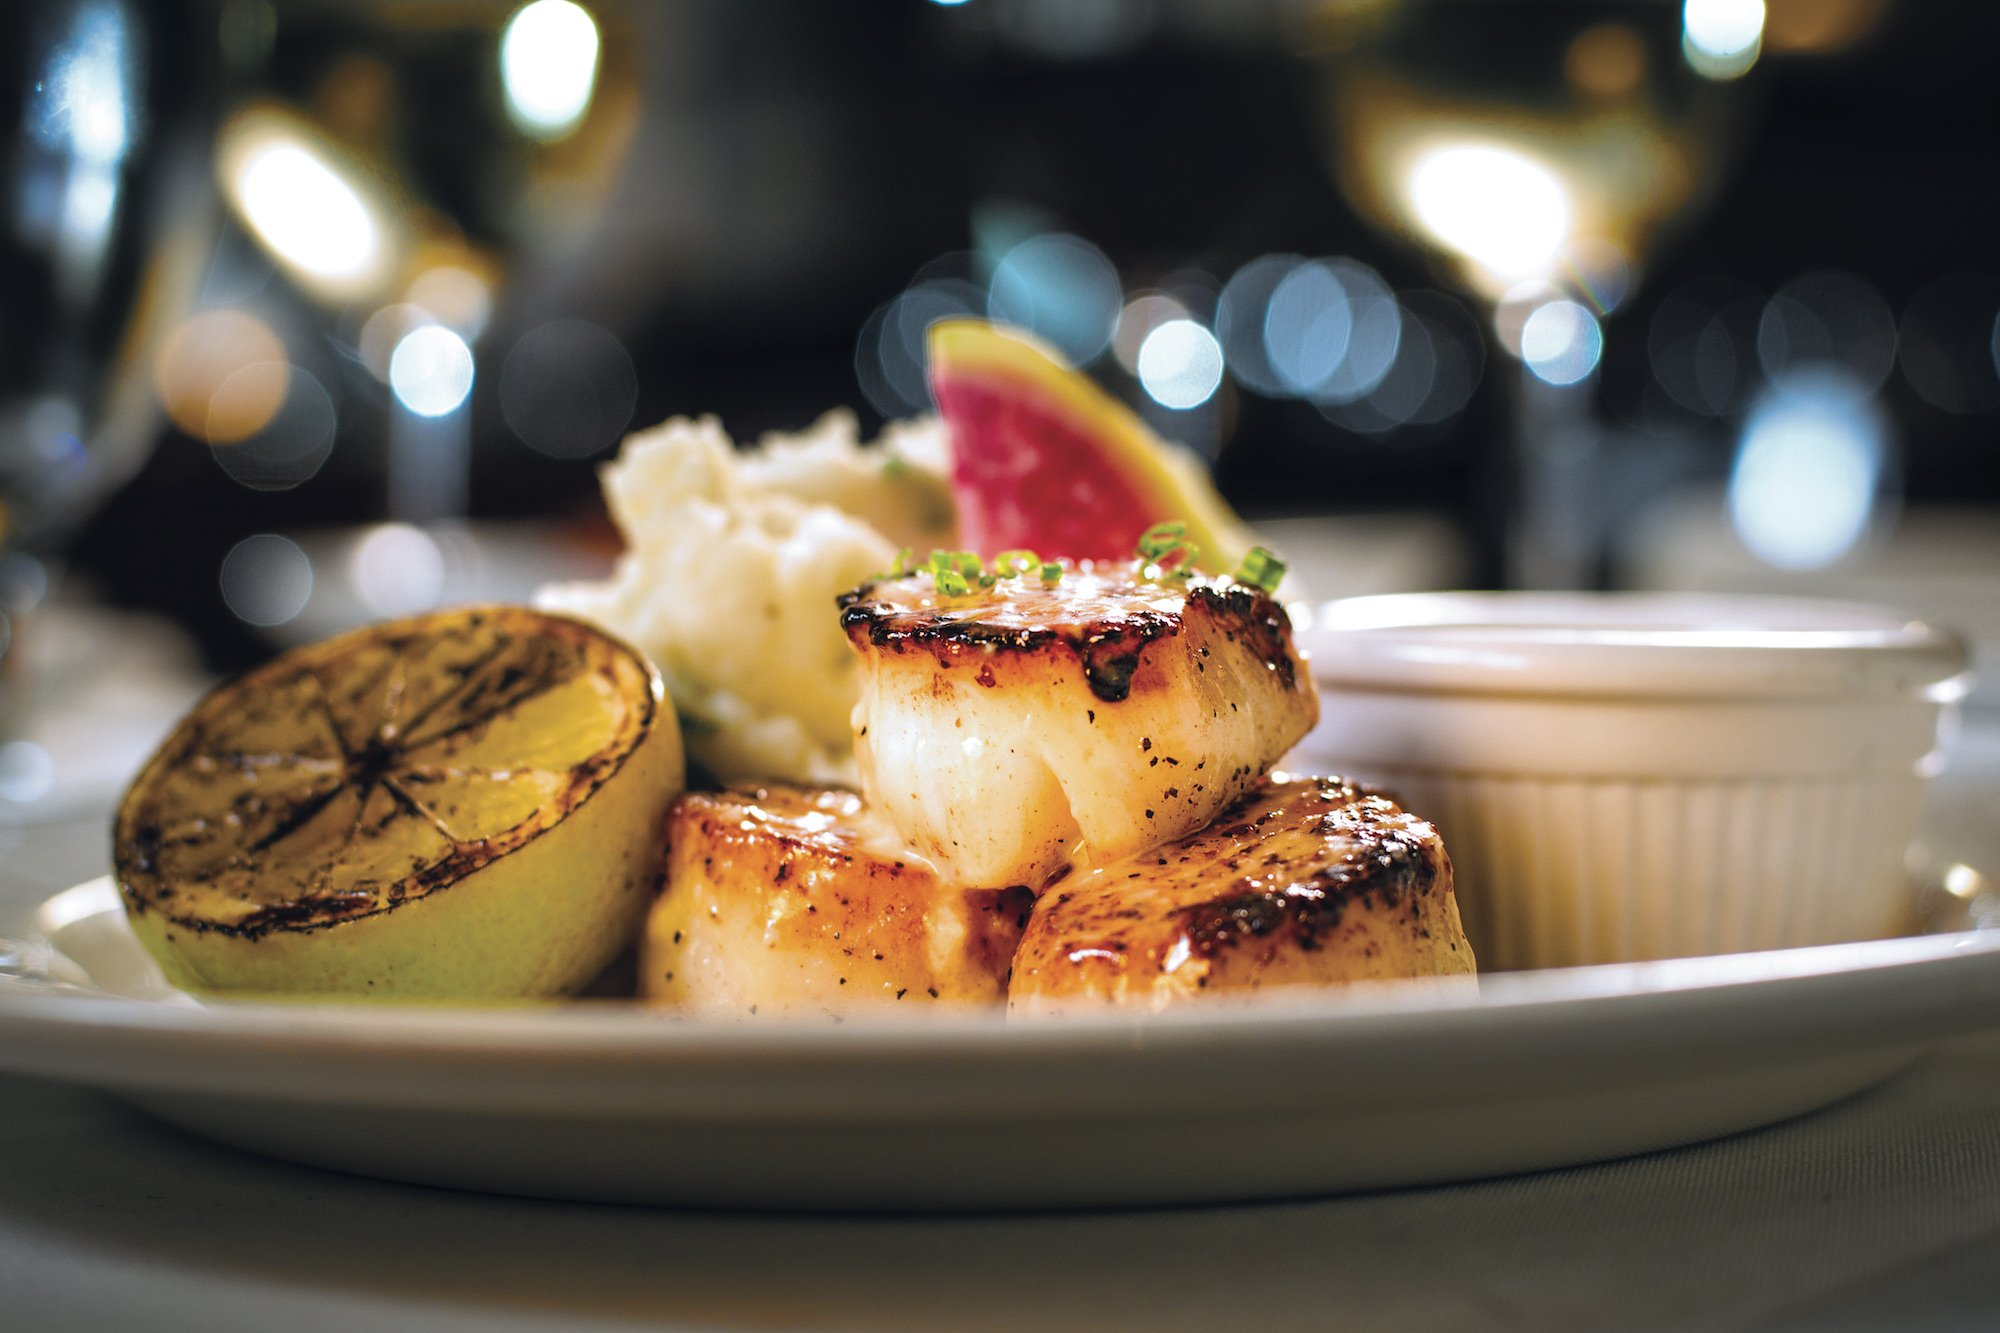 Pan-seared scallops, served with a fresh lemon and parmesan mashed potatoes